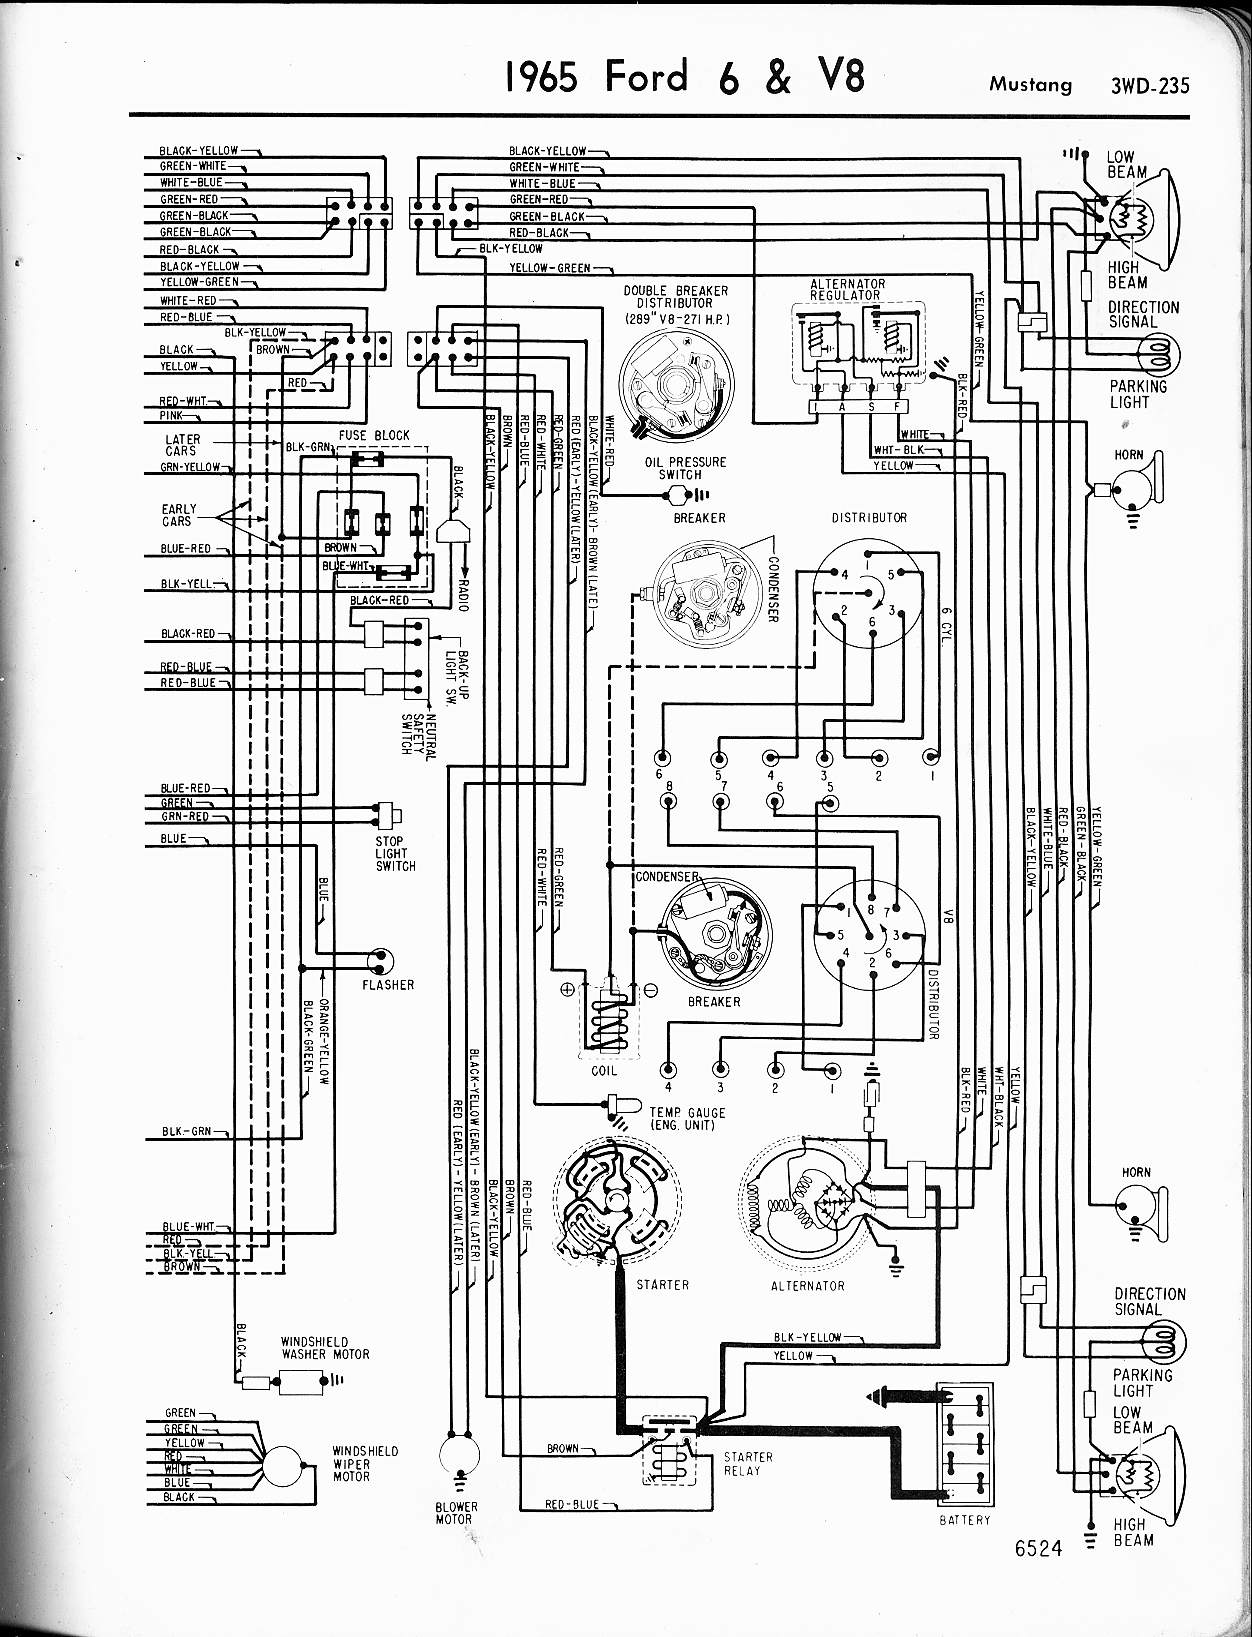 MWire5765 235 100 [ mustang horn wiring diagram ] 63 impala fuse box on 63 1969 ford mustang wiring diagram at nearapp.co